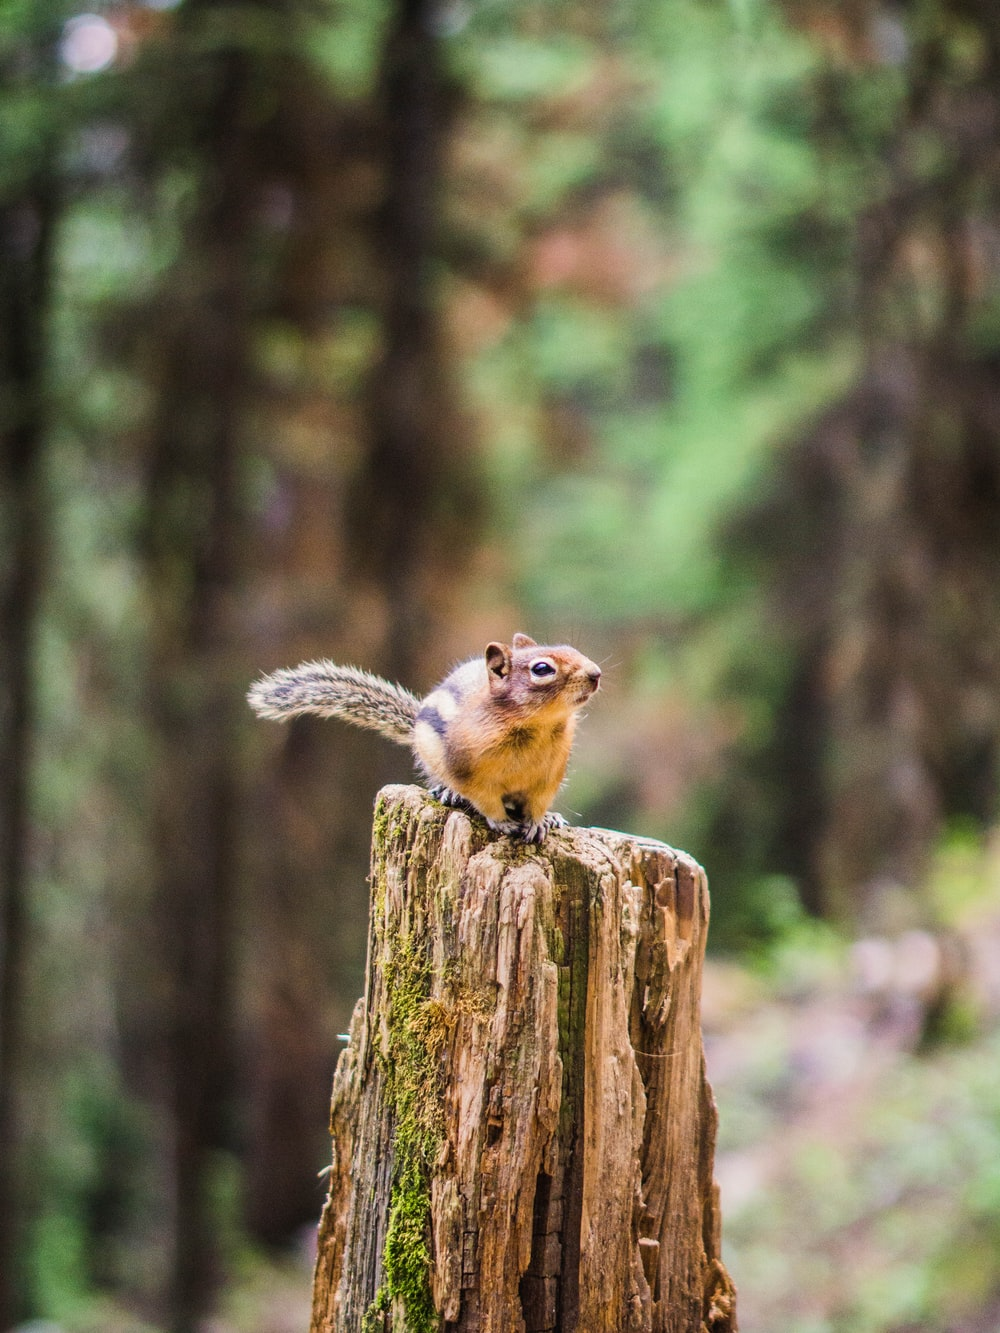 brown squirrel on brown wooden post during daytime